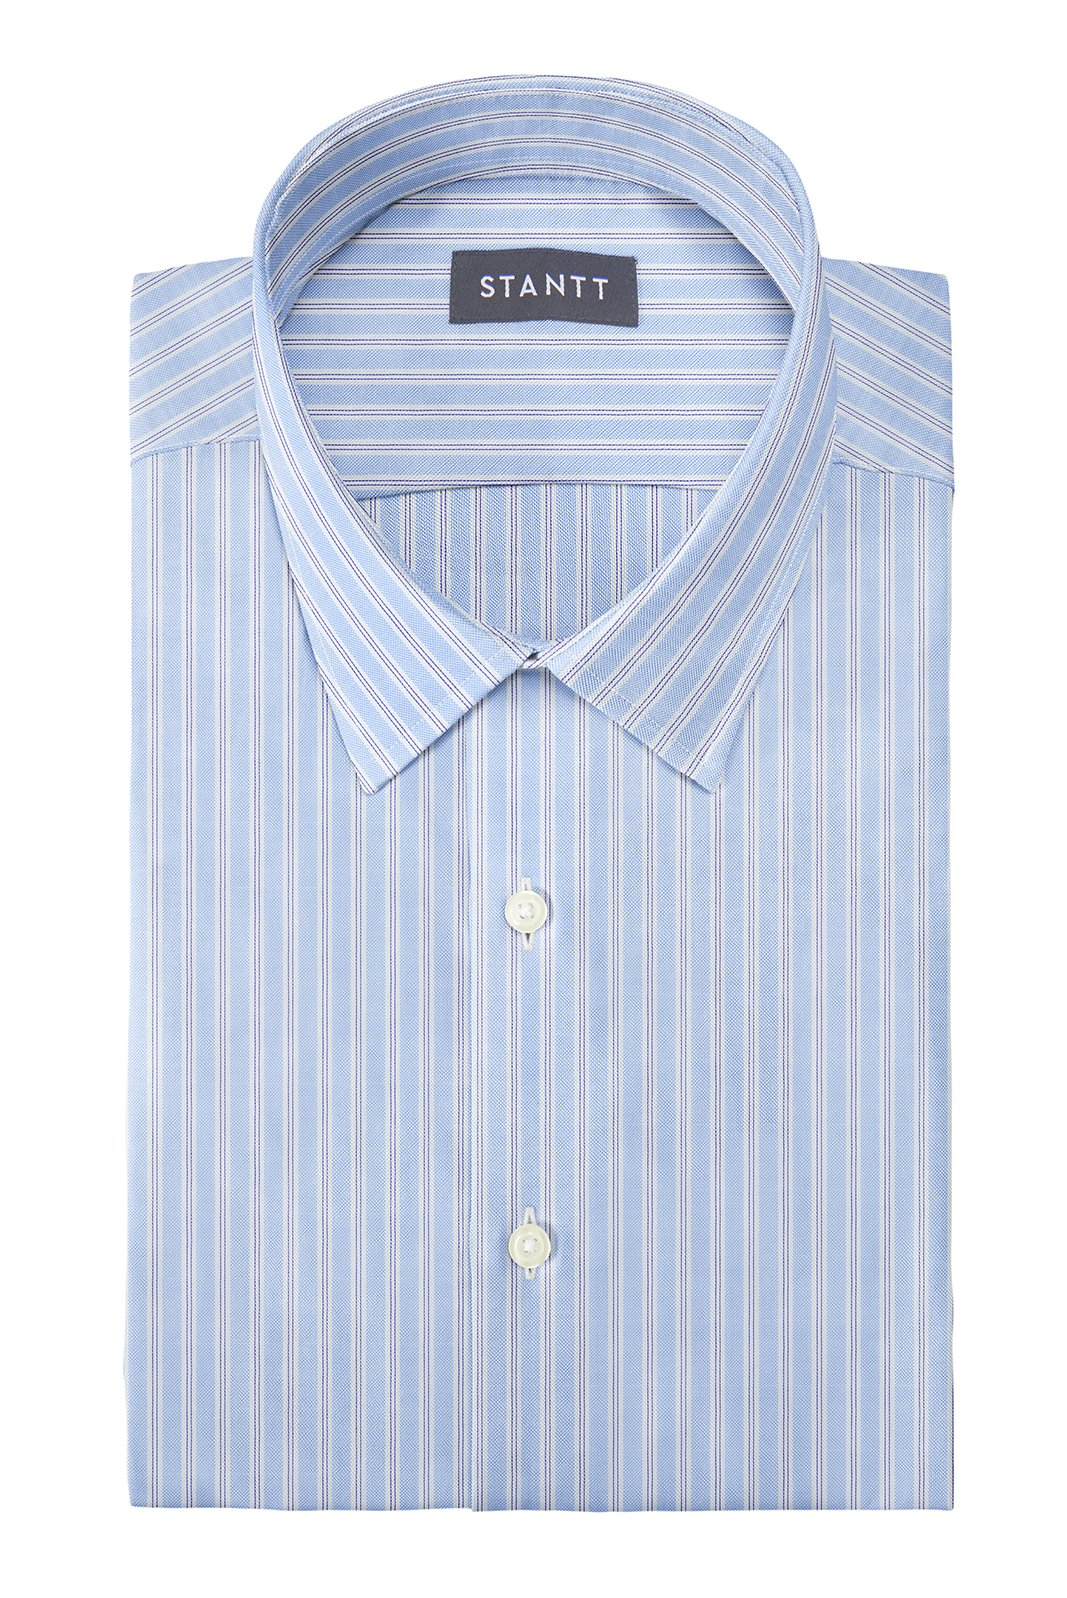 Matrix Reverse Blue Rail Stripe: Semi-Spread Collar, French Cuff